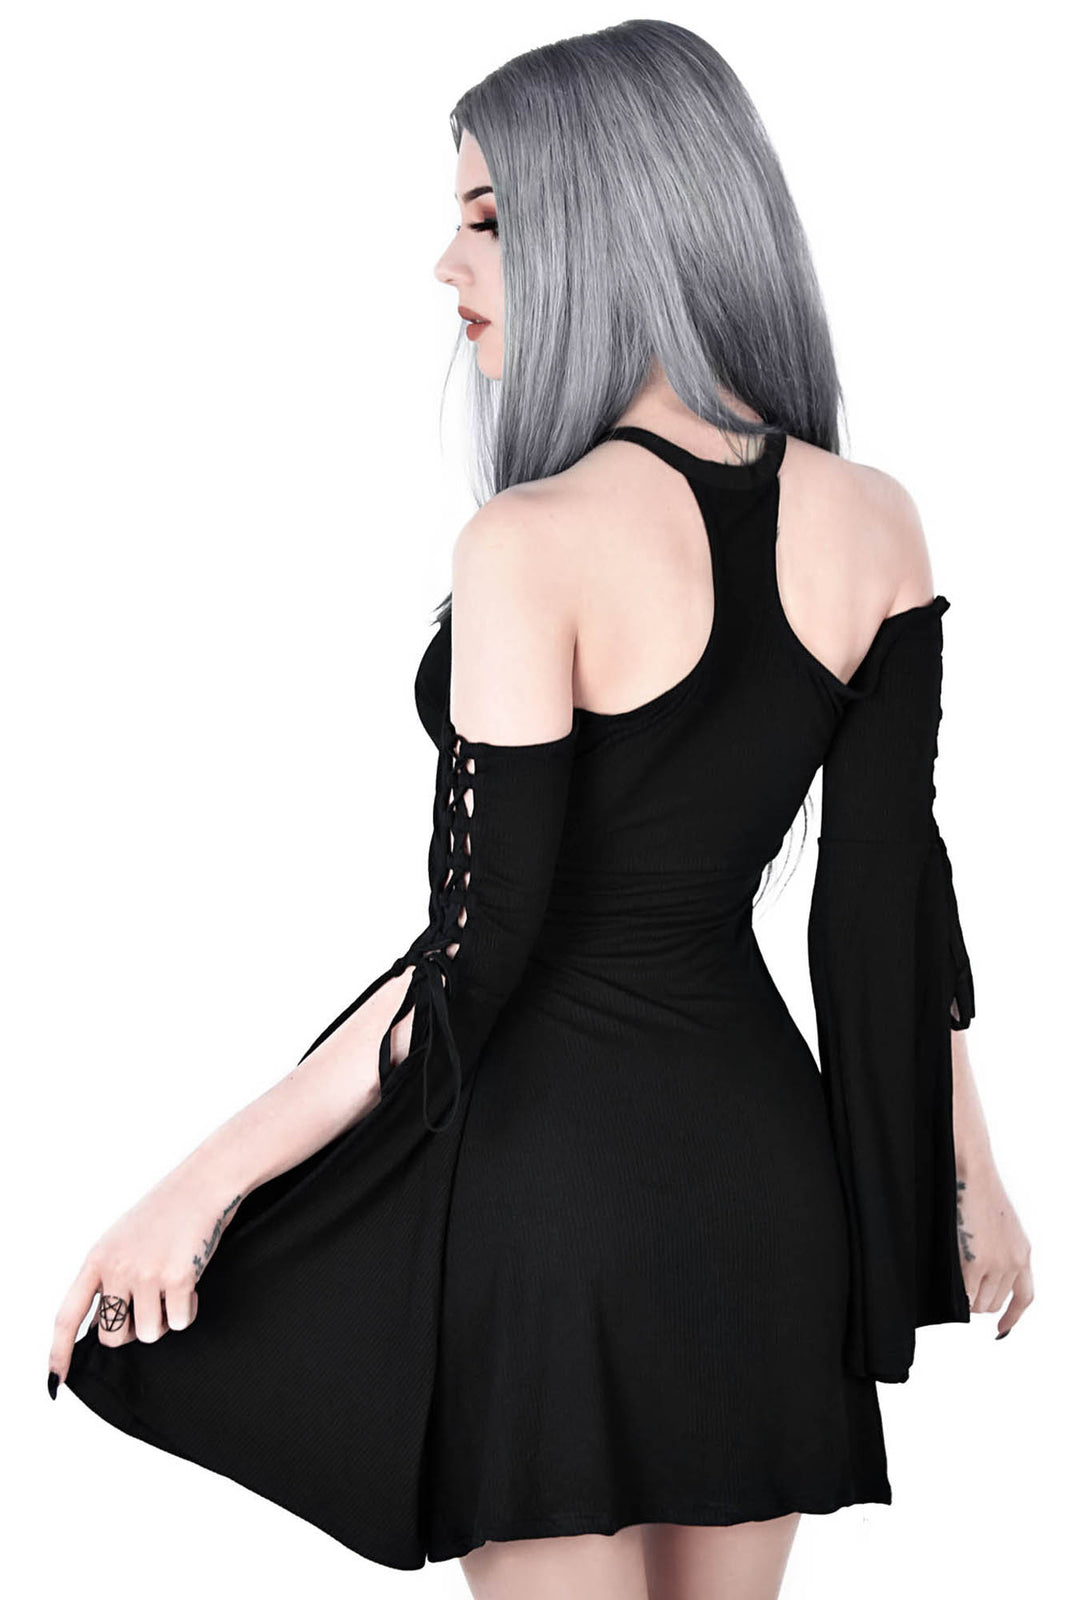 Aura Maiden Dress [B]